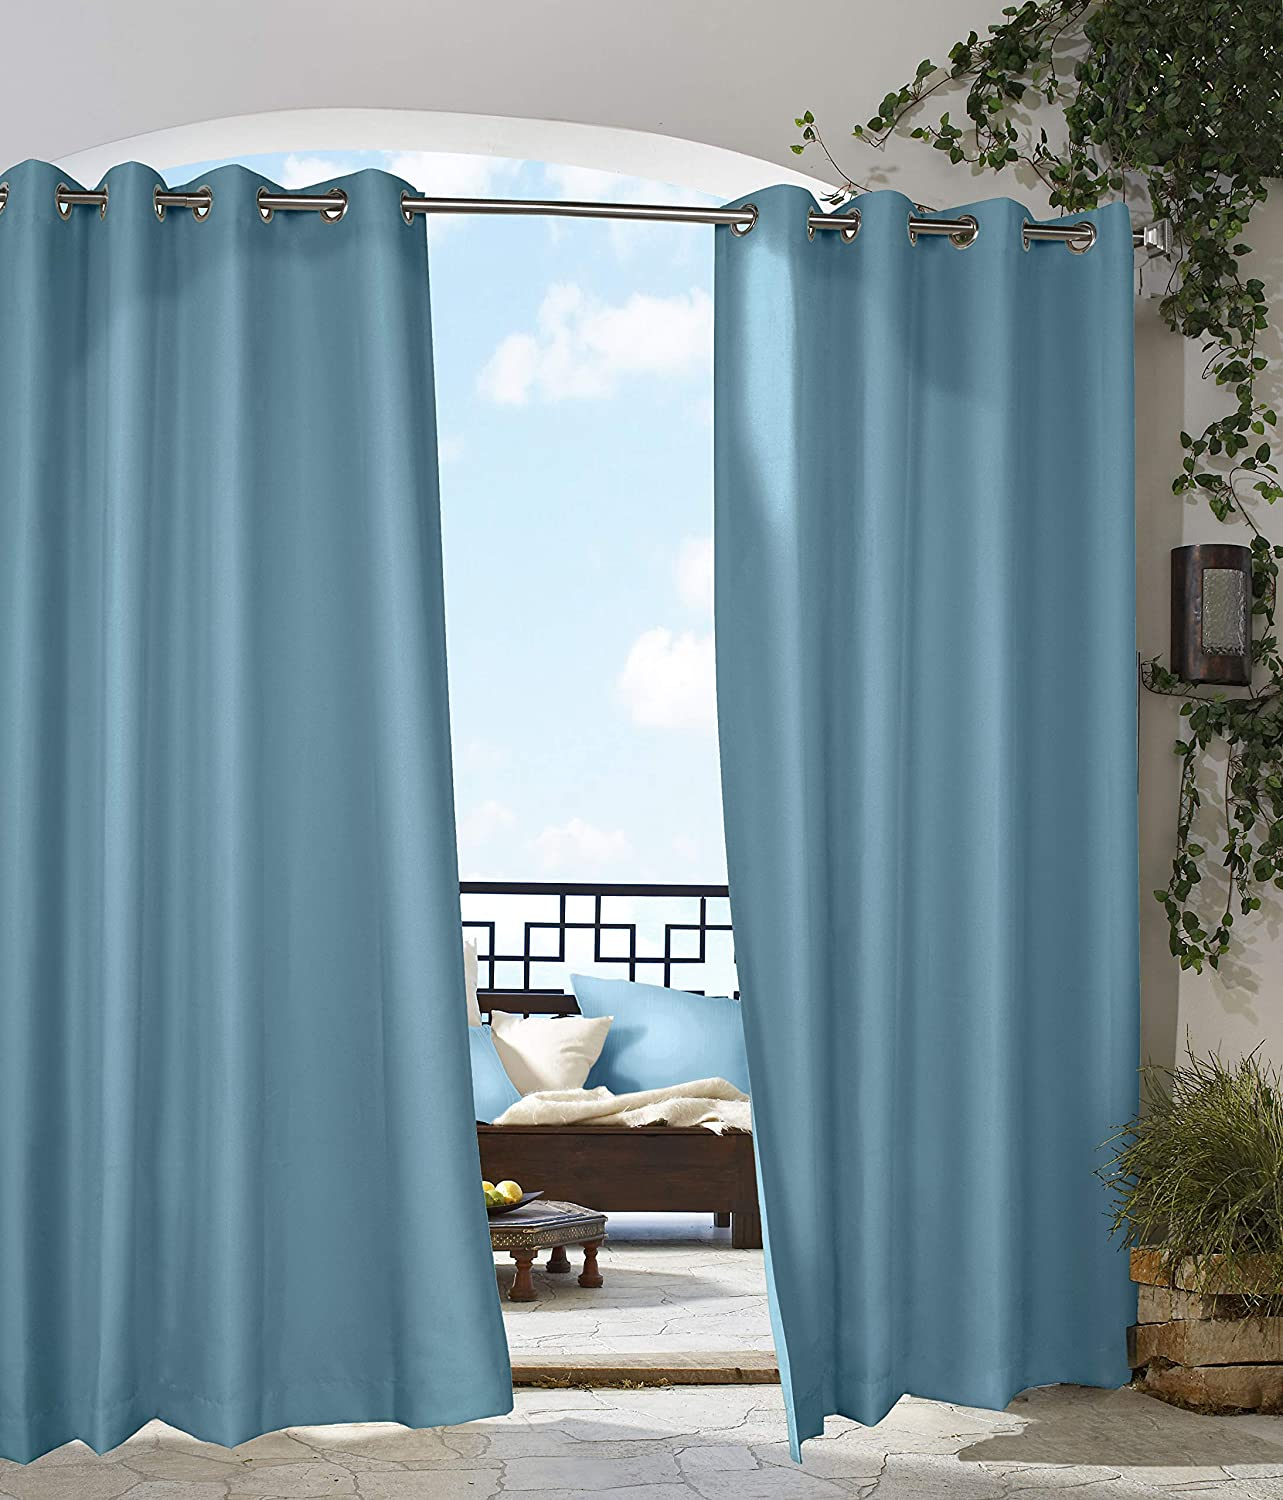 Outdoor Decor Decoración al Aire Libre Gazebo Paneles Interior Exterior Ventana, 50 por 96, Color Azul: Amazon.es: Hogar